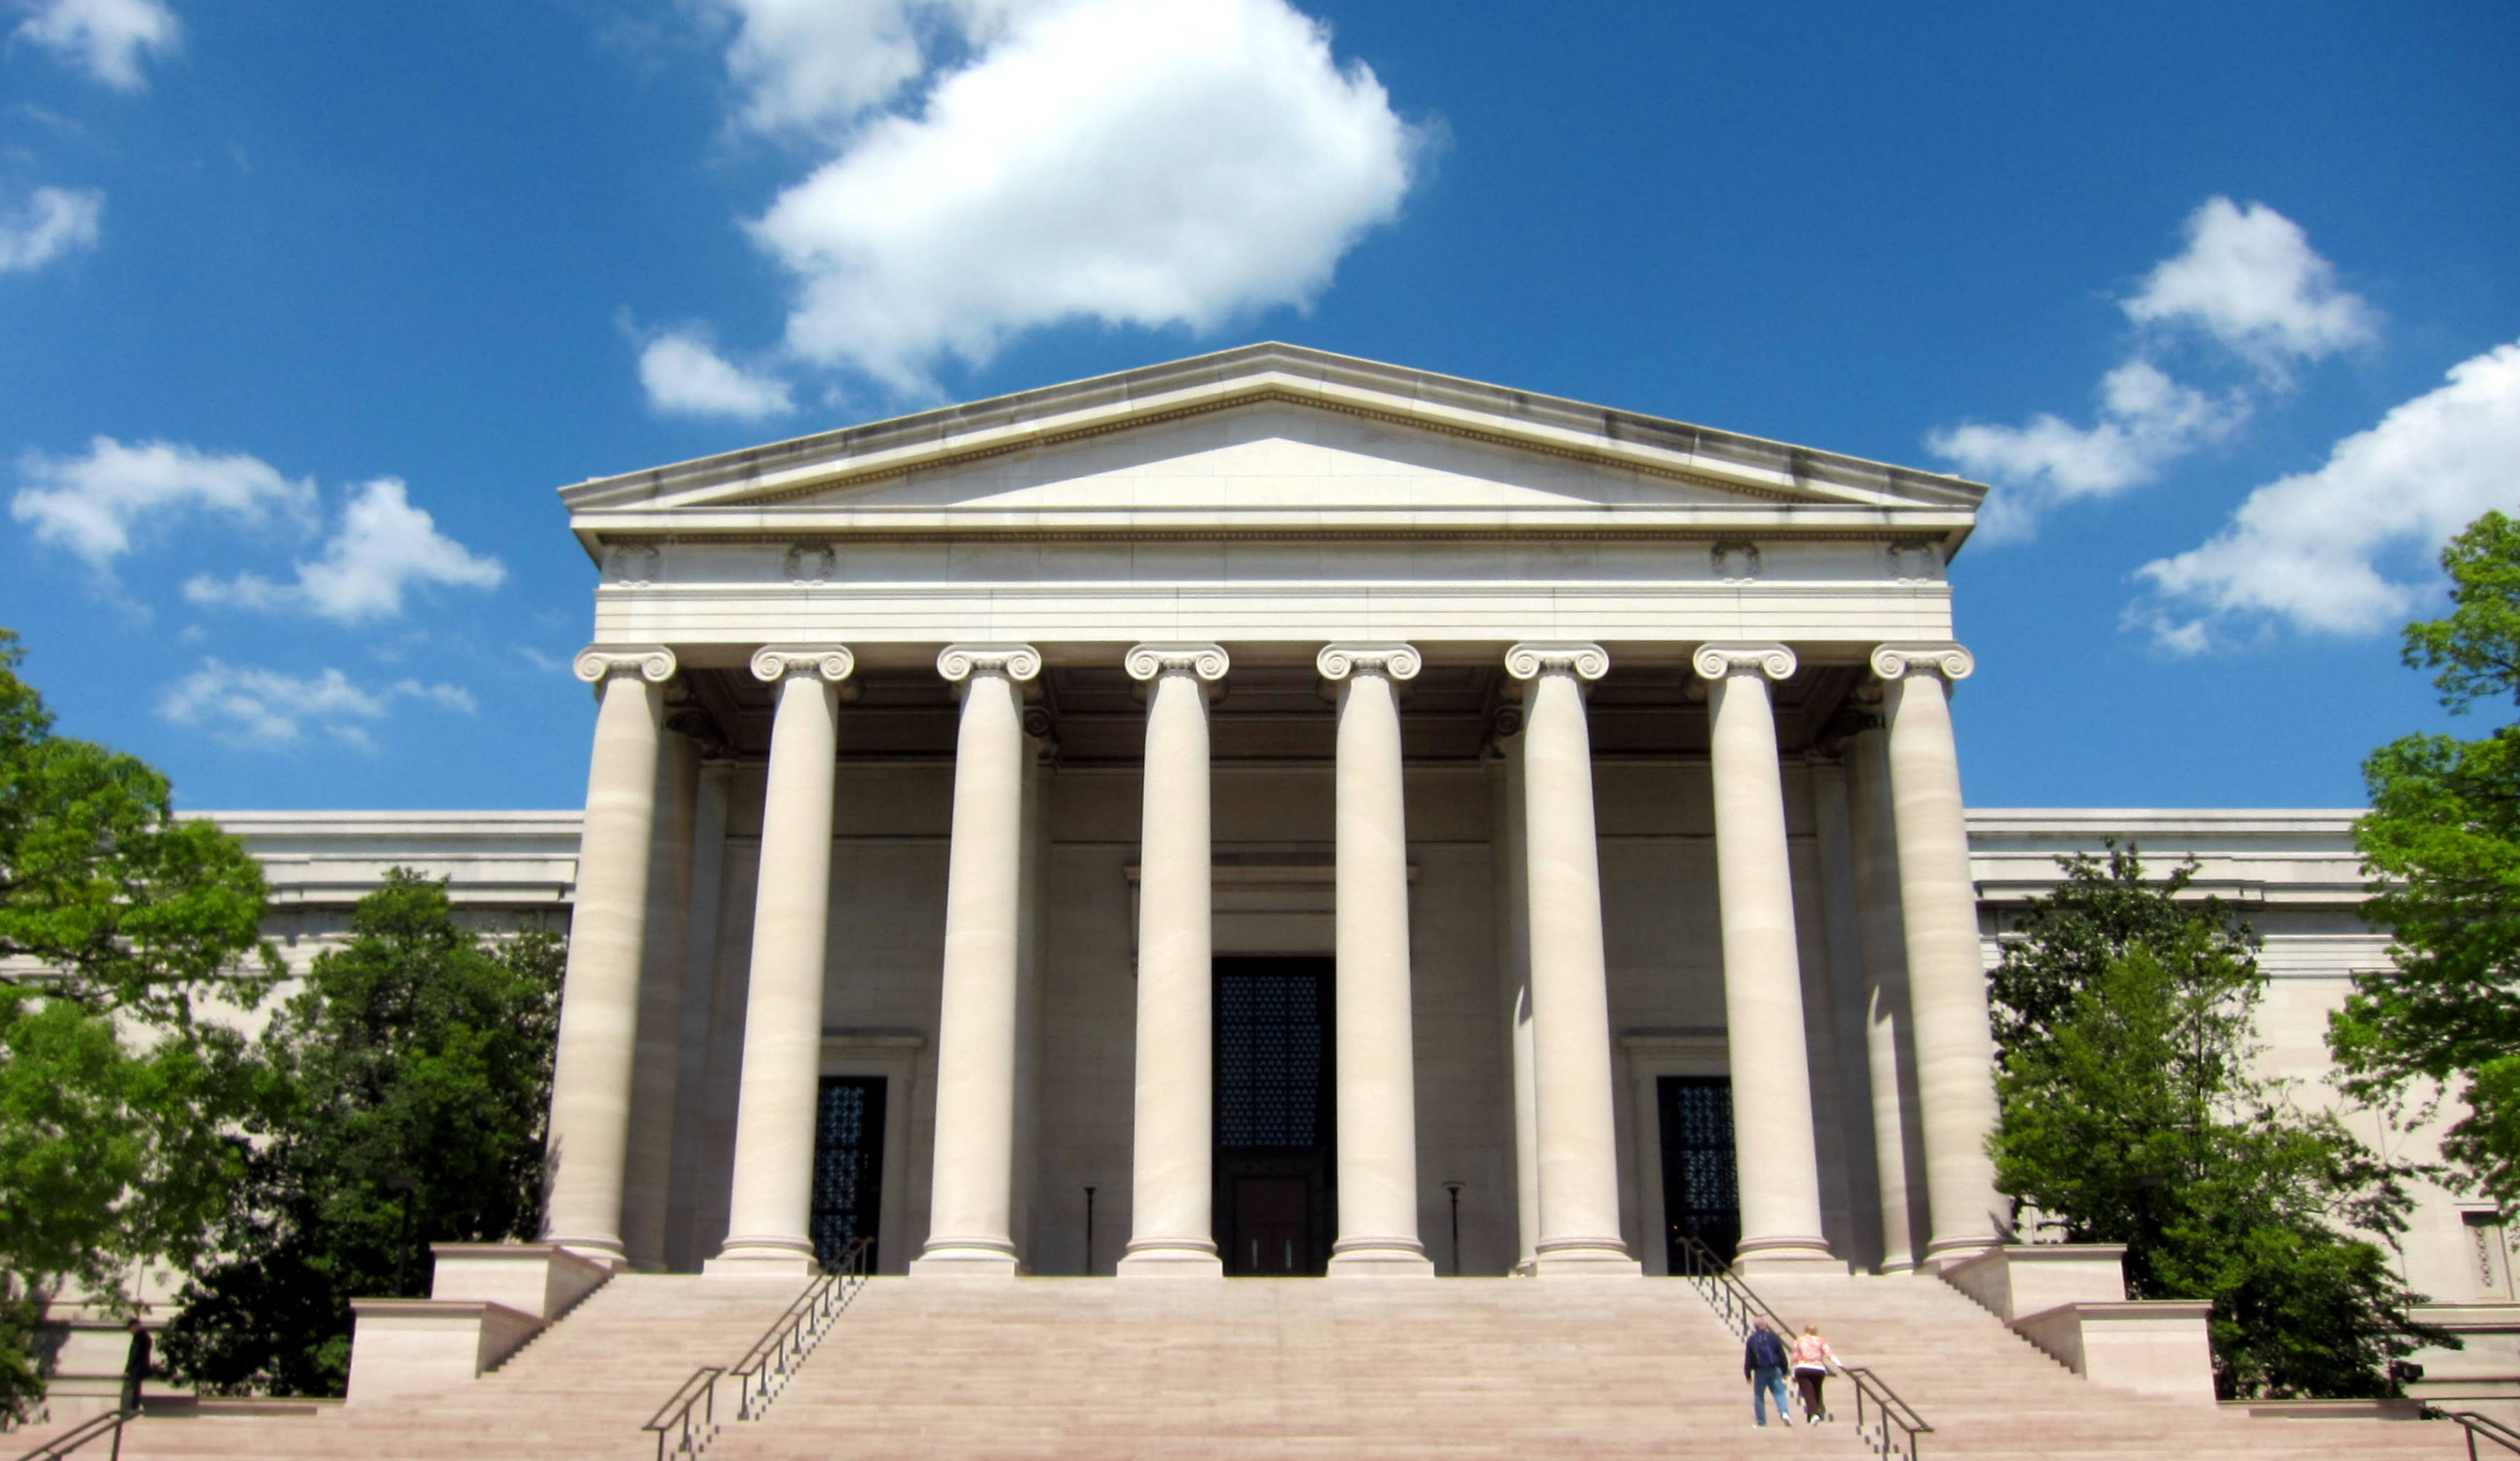 National_Gallery_of_Art_-_West_Building_